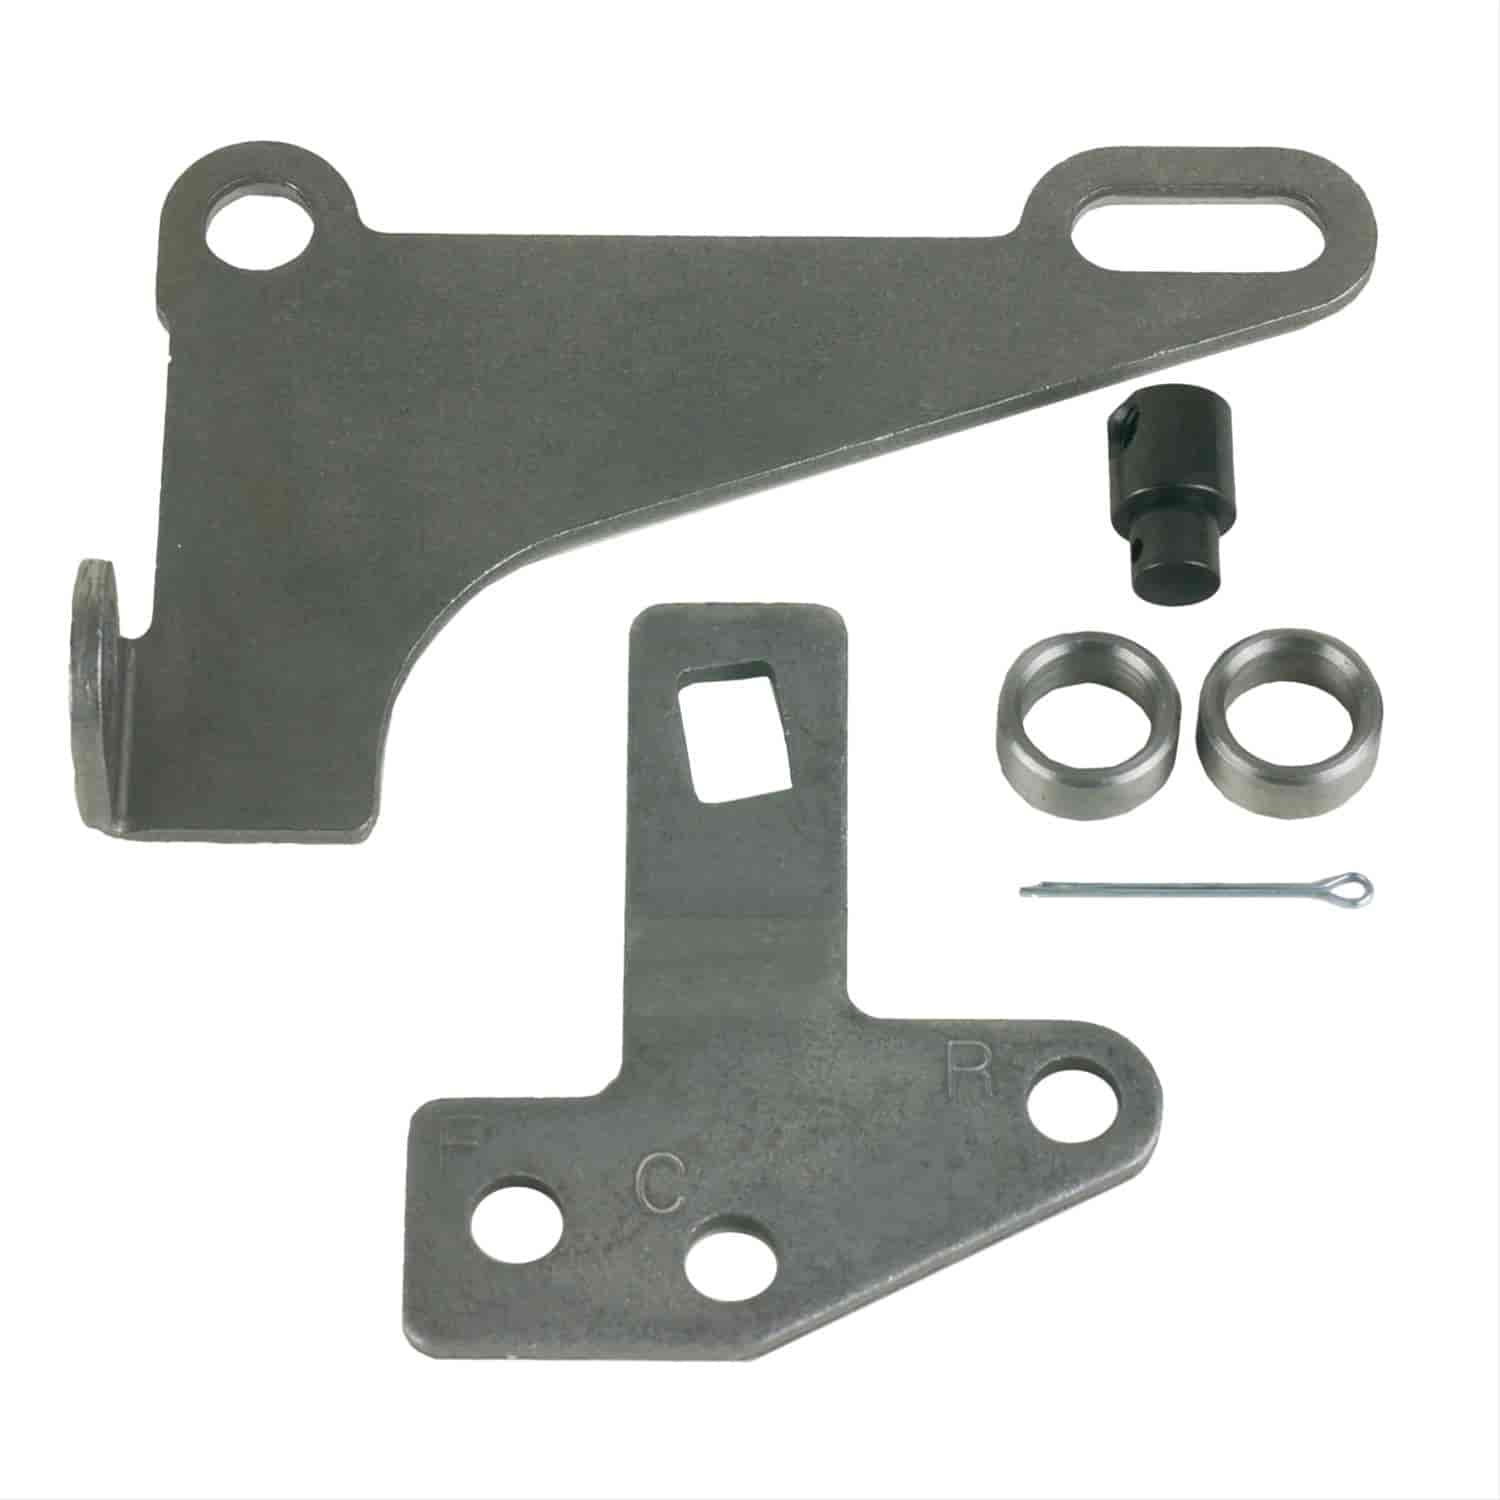 B&M Automatic Shifter Bracket and Lever Kit GM 4L60E, 4L65E, 4L80E, 4L85E  With PRNDL Switch